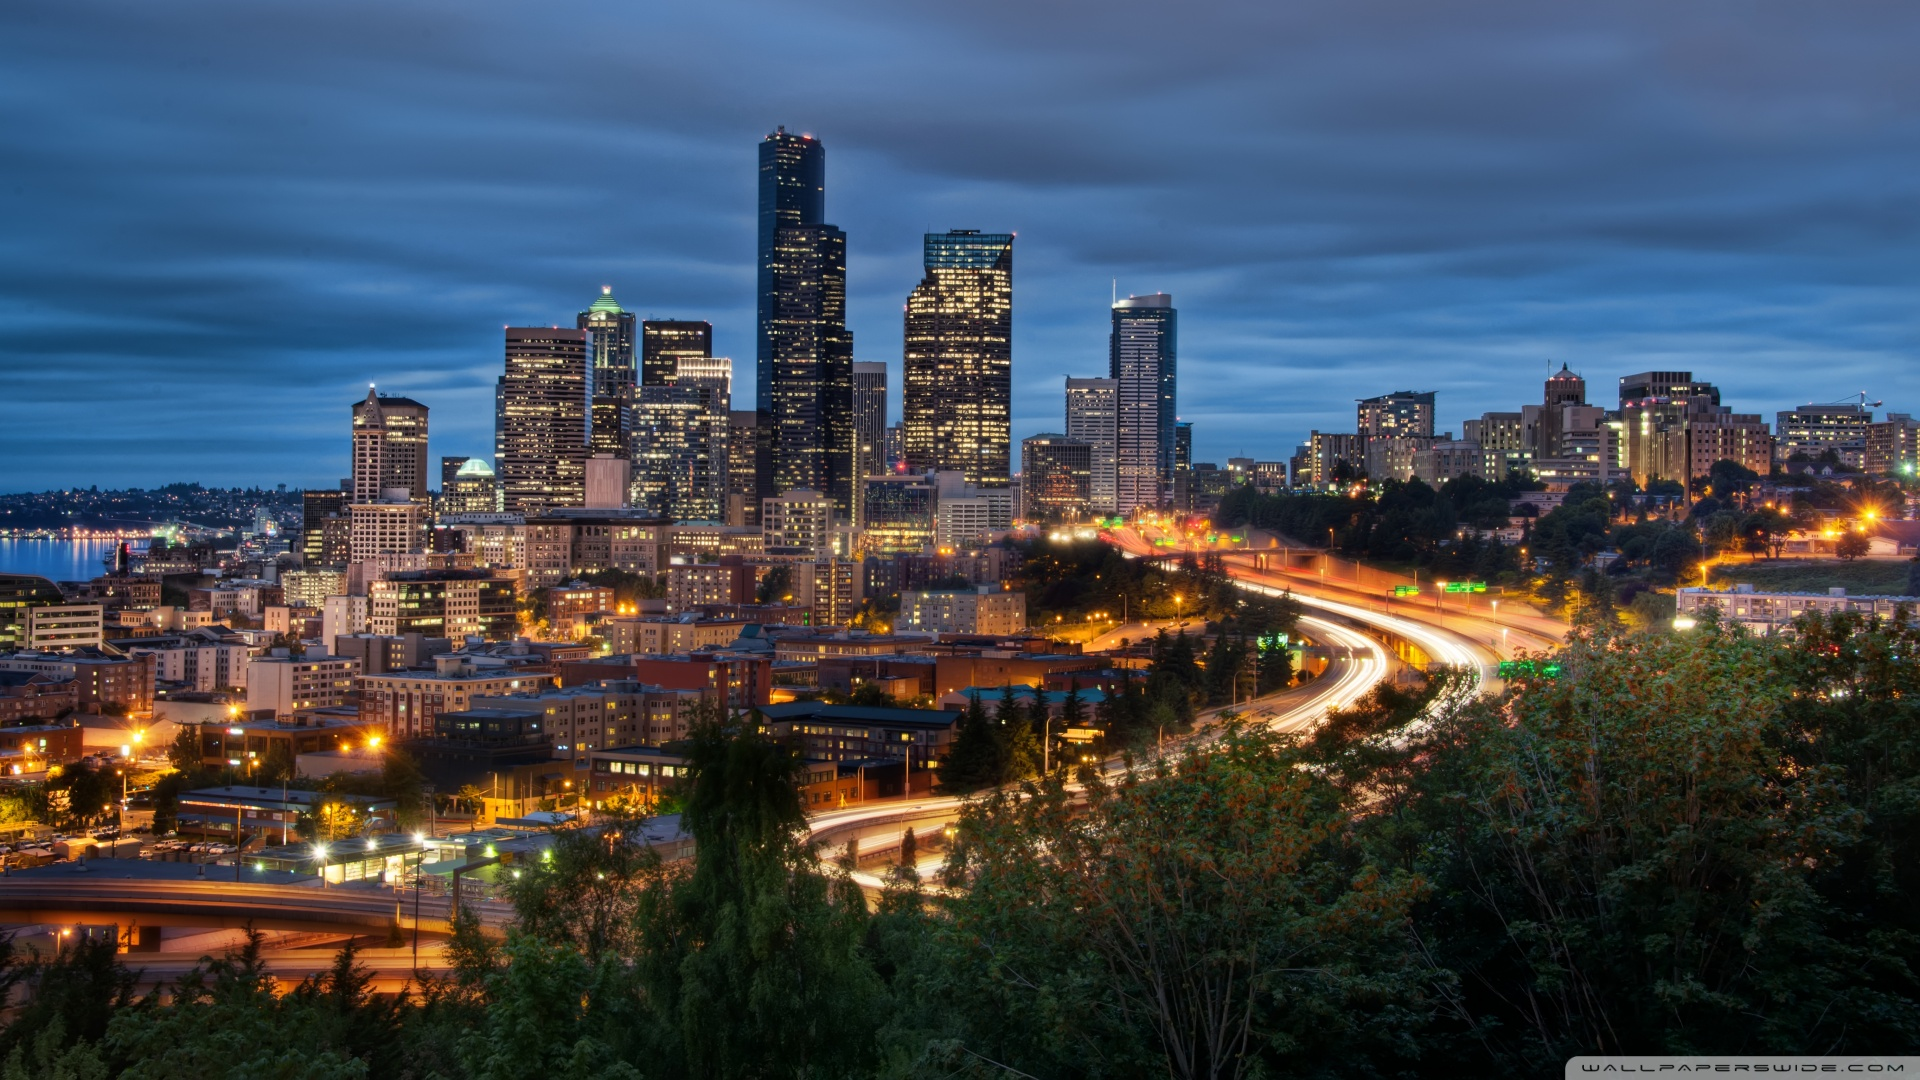 Downtown Seattle Wallpaper 40857 1920x1080 px